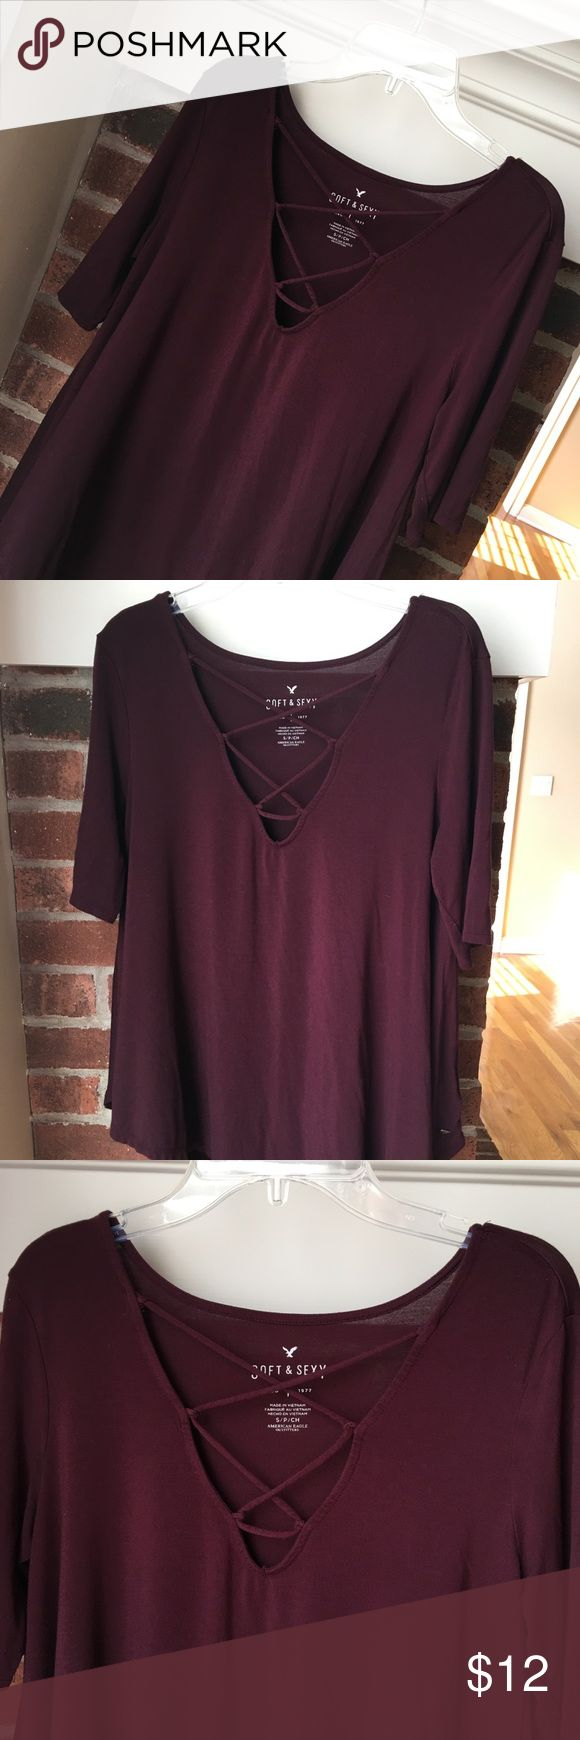 """AE Soft & Sexy Short Sleeve Lace Up Tee Sz S Burgundy American Eagle Soft & Sexy Short Sleeve Tee Size Small. Super soft fabric with just enough stretch and designed to drape. Lace-up v-neck. Sewn Eagle metal logo piece at the bottom. 95% Viscose, 5% Elastane. Stock picture in a different color (to show fit). Good condition. Length from shoulder is about 25"""" in the front (28"""" in the back), Chest is about 36"""". Kept in a smoke free home. American Eagle Outfitters Tops Tees - Short Sleeve"""